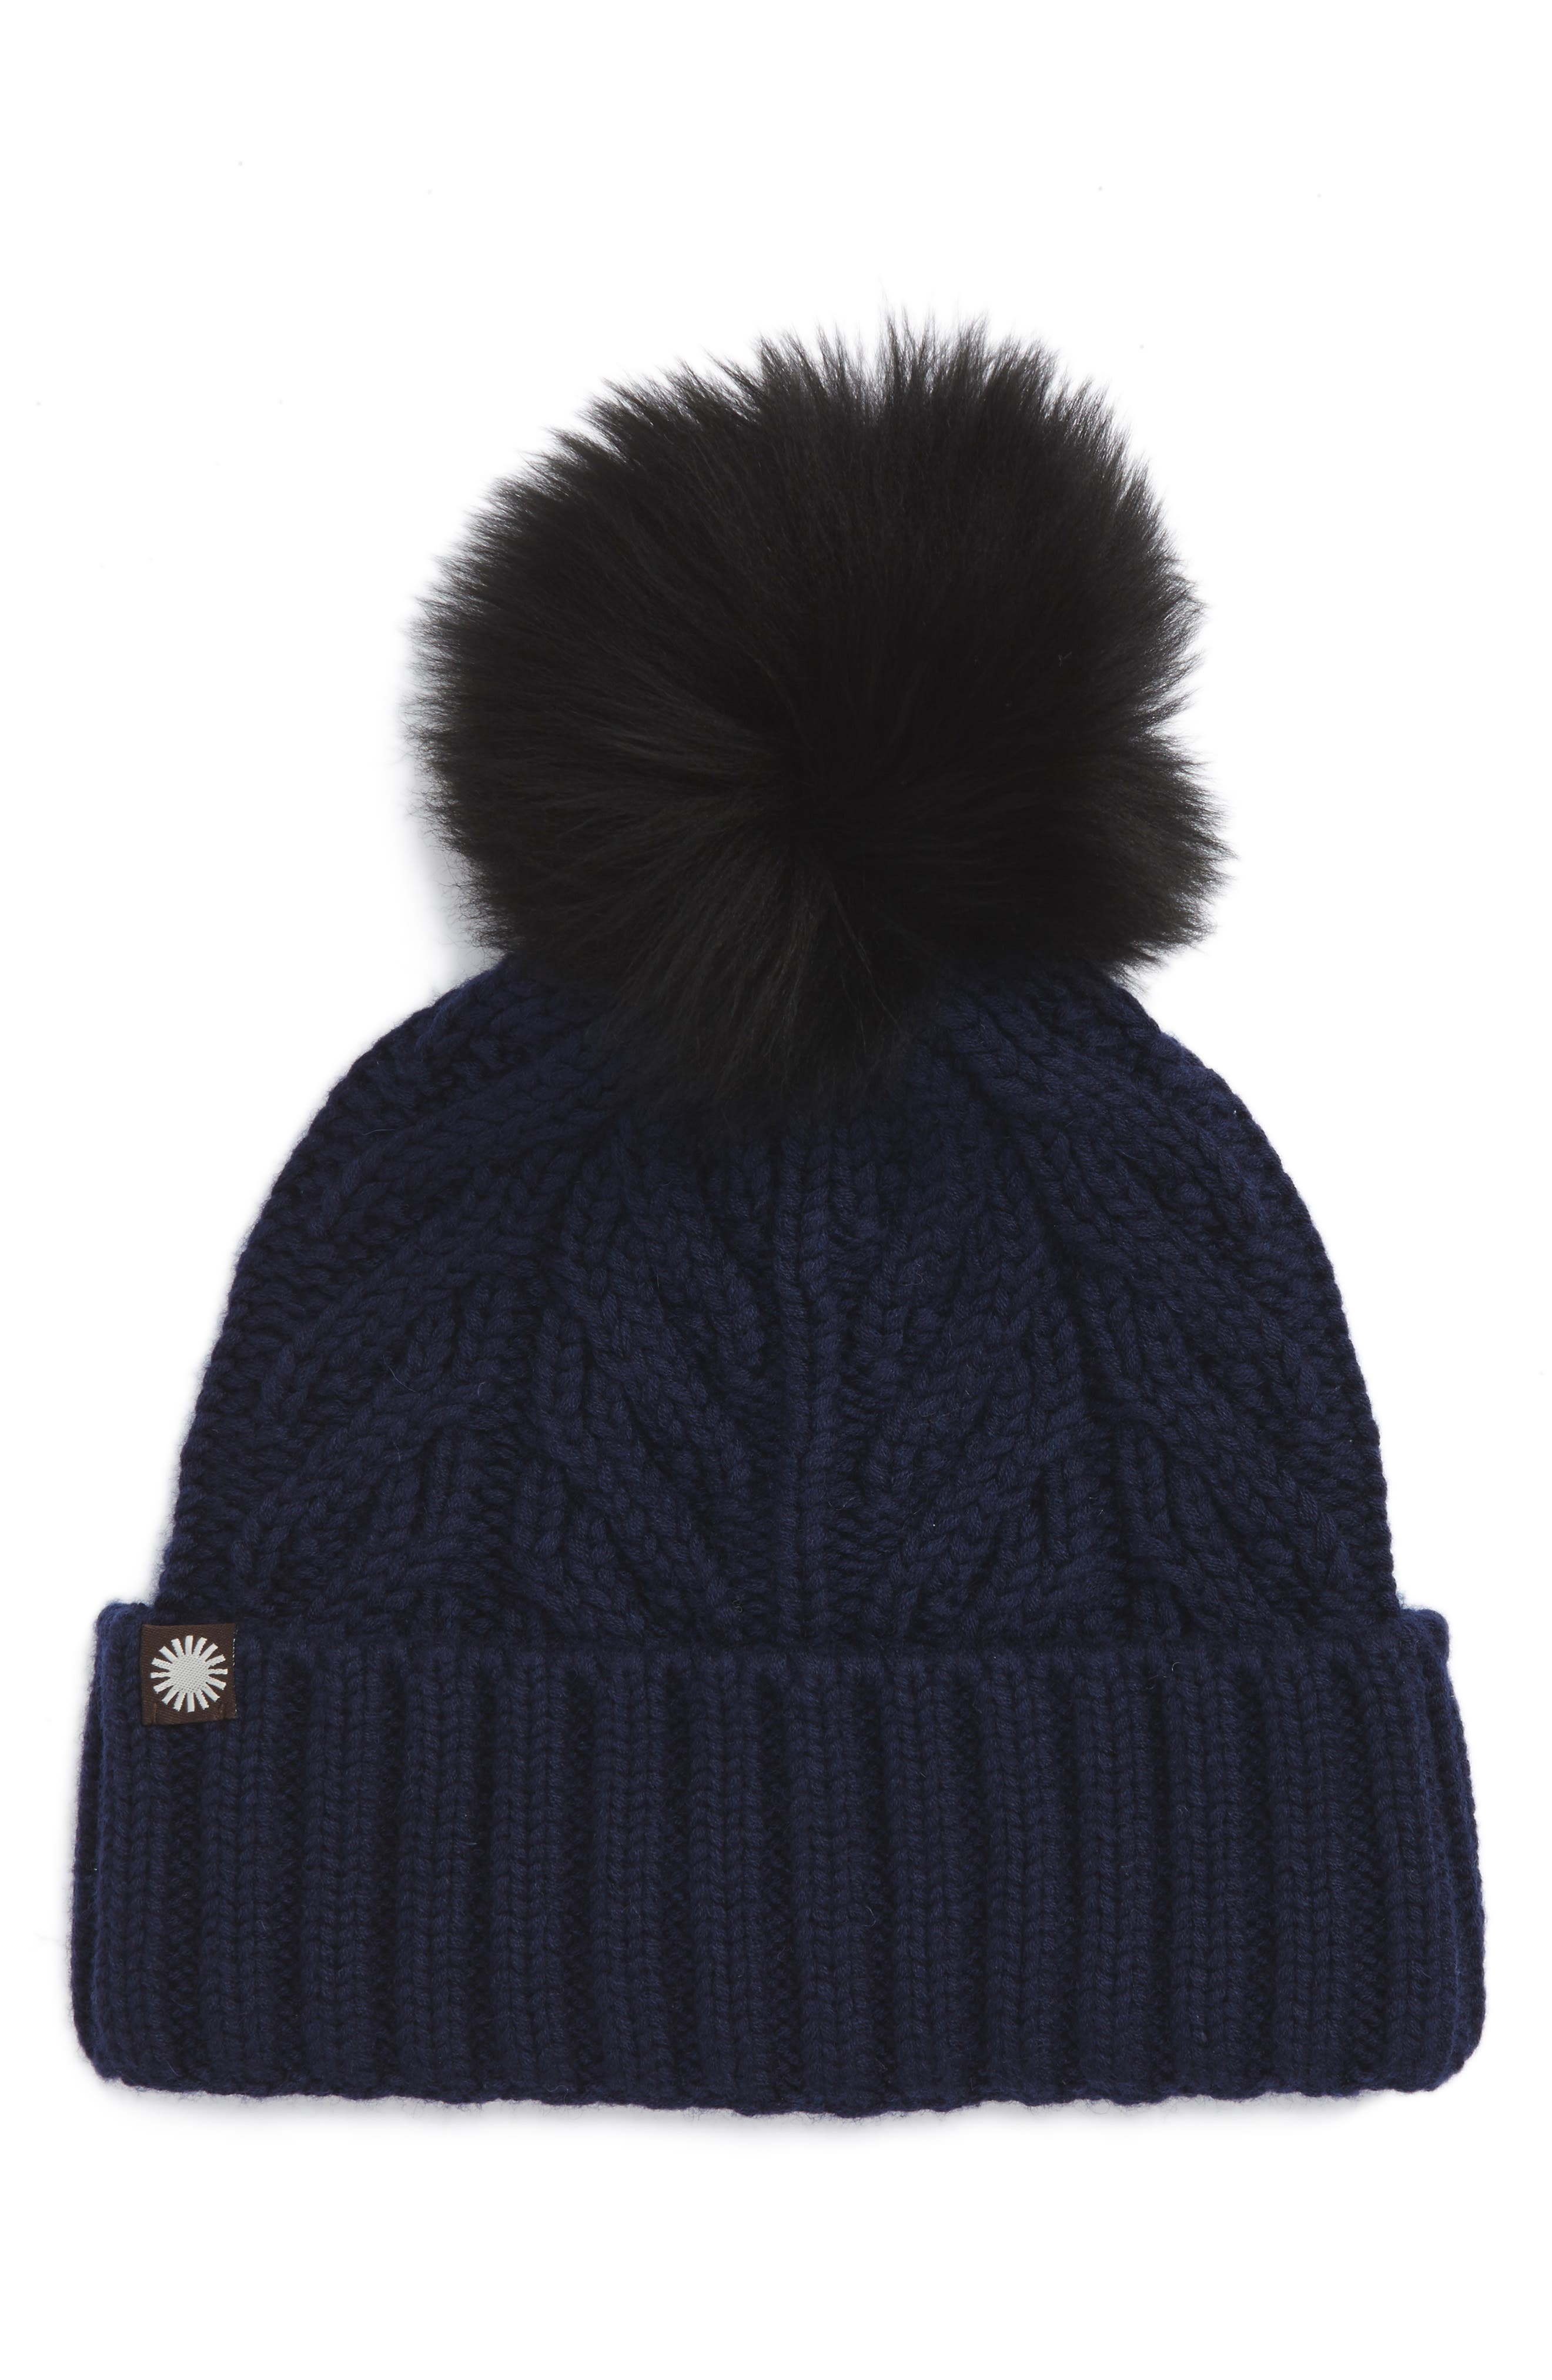 UGG<sup>®</sup> Cable Knit Cuff Hat with Genuine Shearling Pom,                             Main thumbnail 3, color,